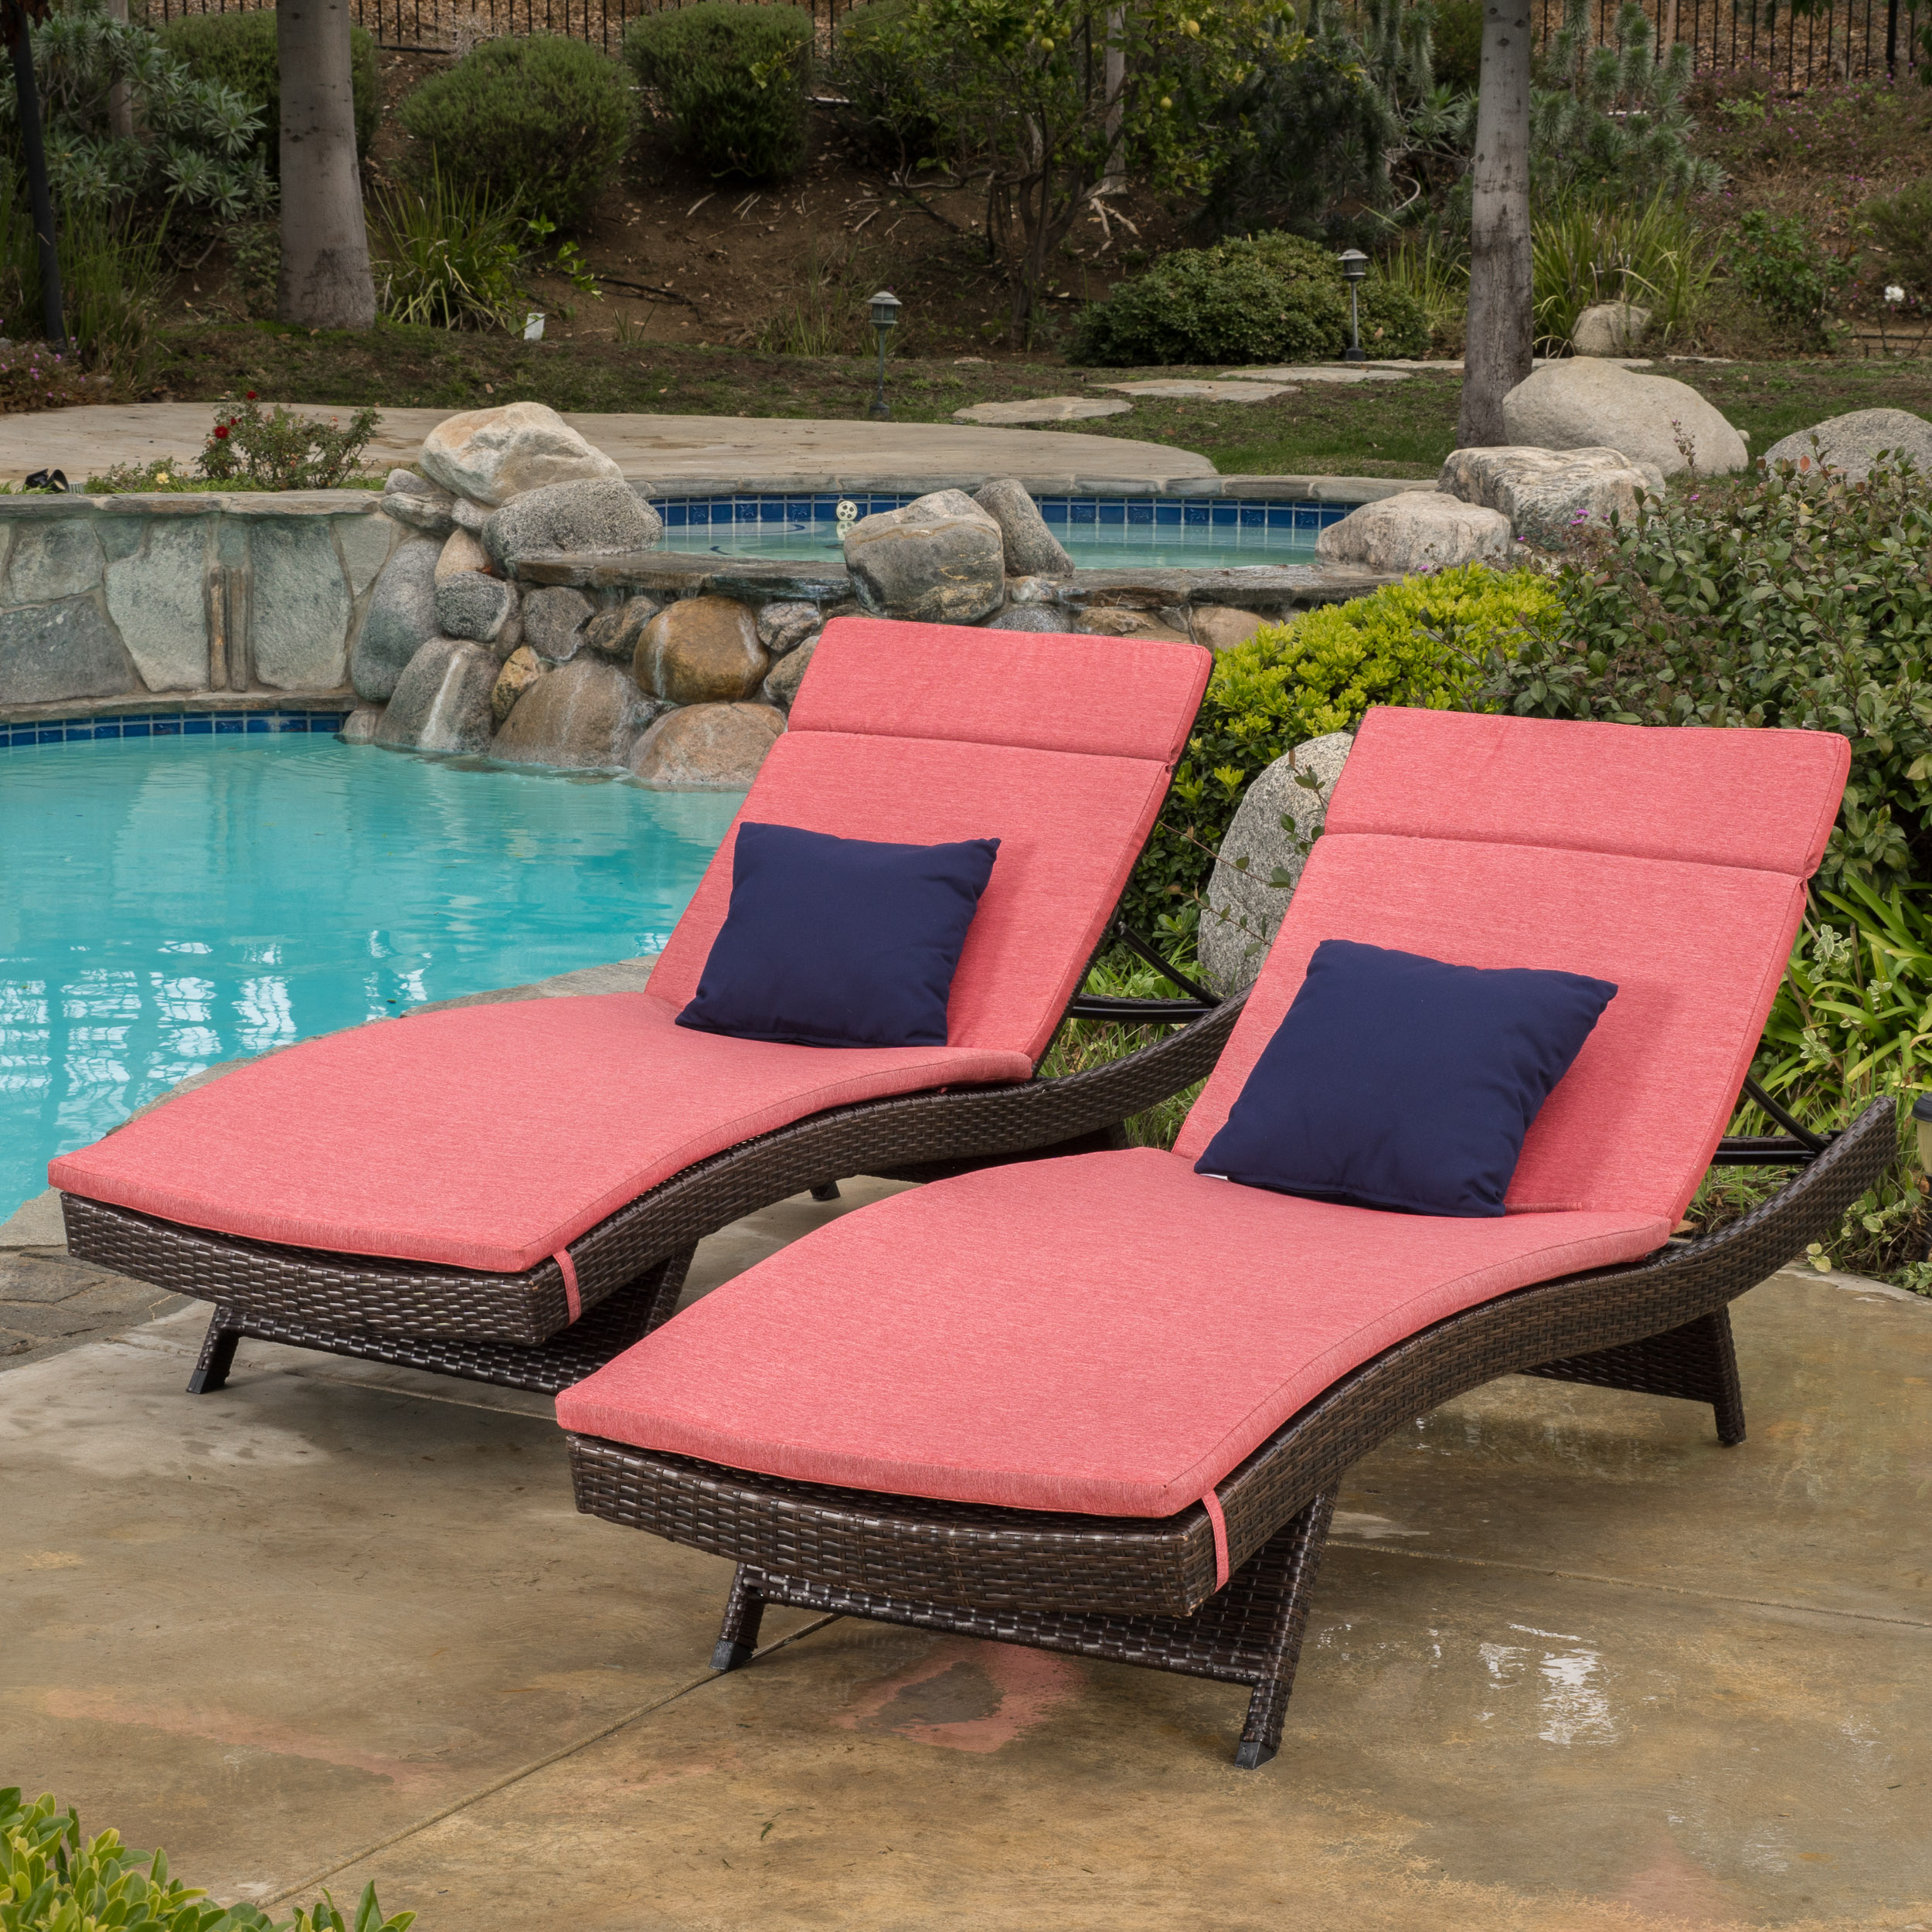 Anthony OutdoorWicker Adjustable Chaise Lounge with Cushions, Set of 2, Multibrown, Red